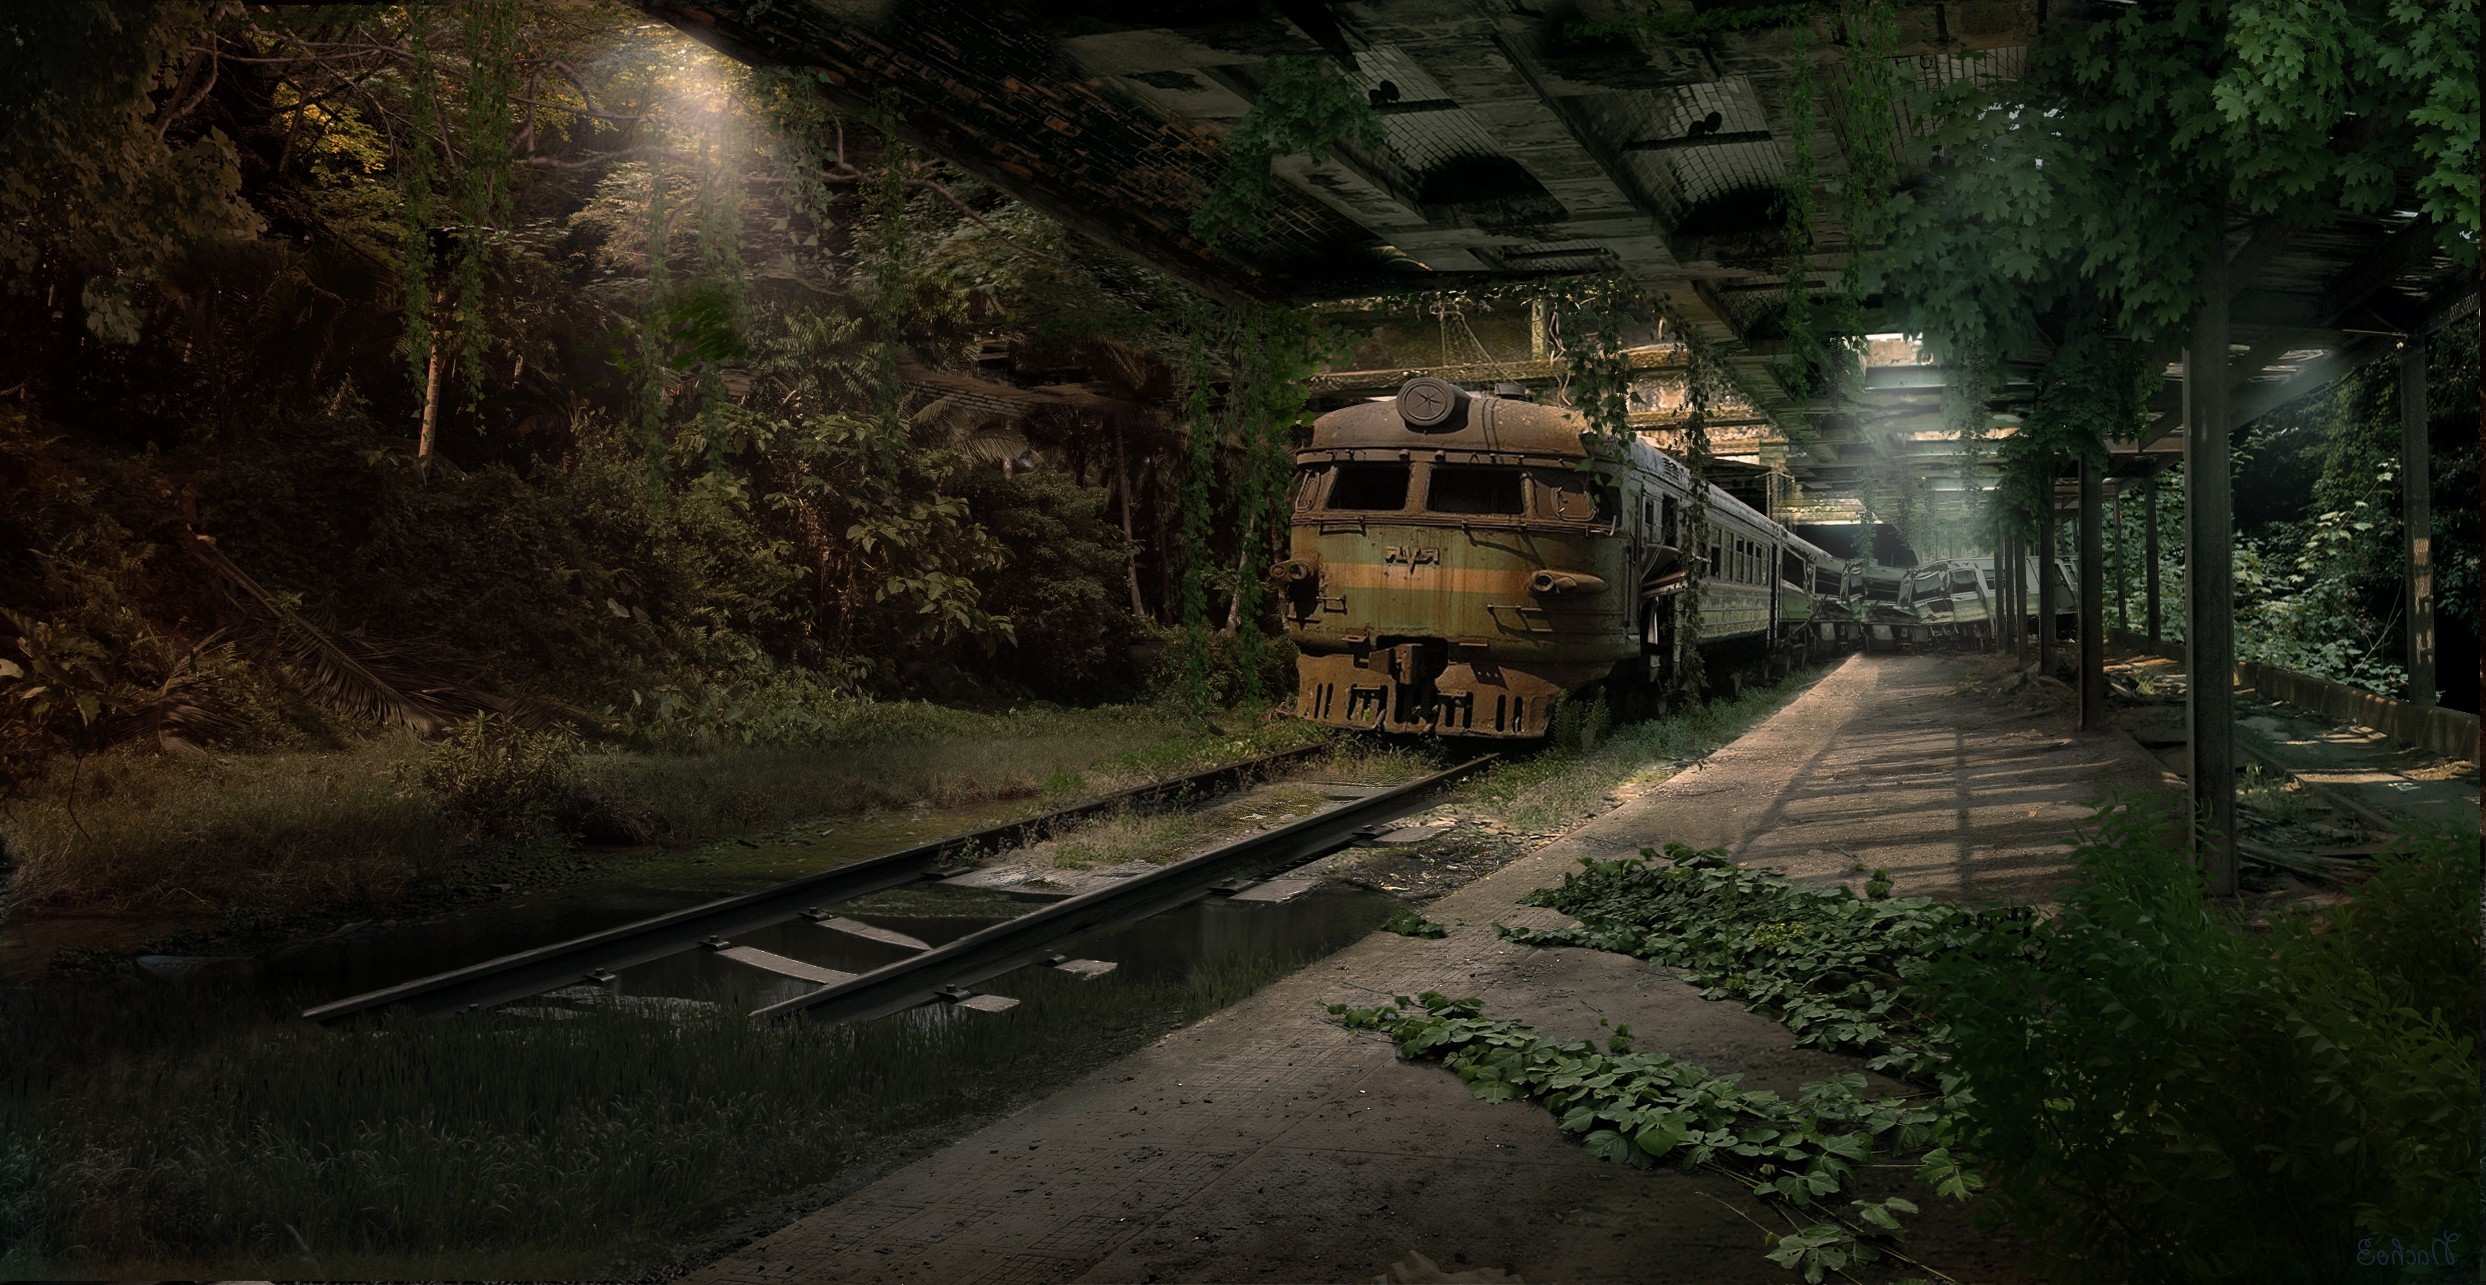 65 Train Desktop Wallpapers on WallpaperPlay 2486x1285